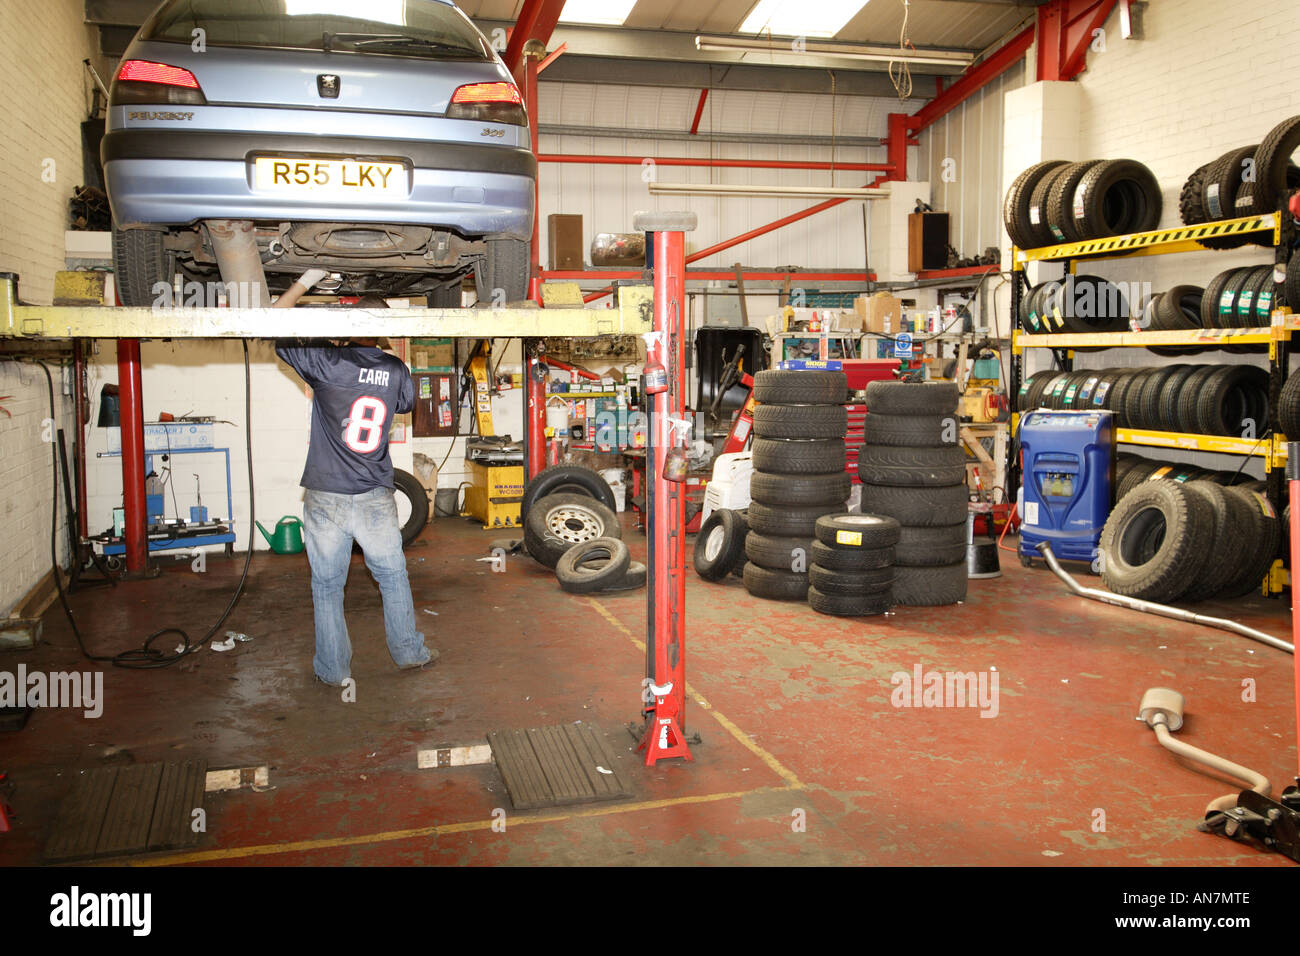 Working Auto Lift : Car up on hydraulic lift at a garage mechanic working